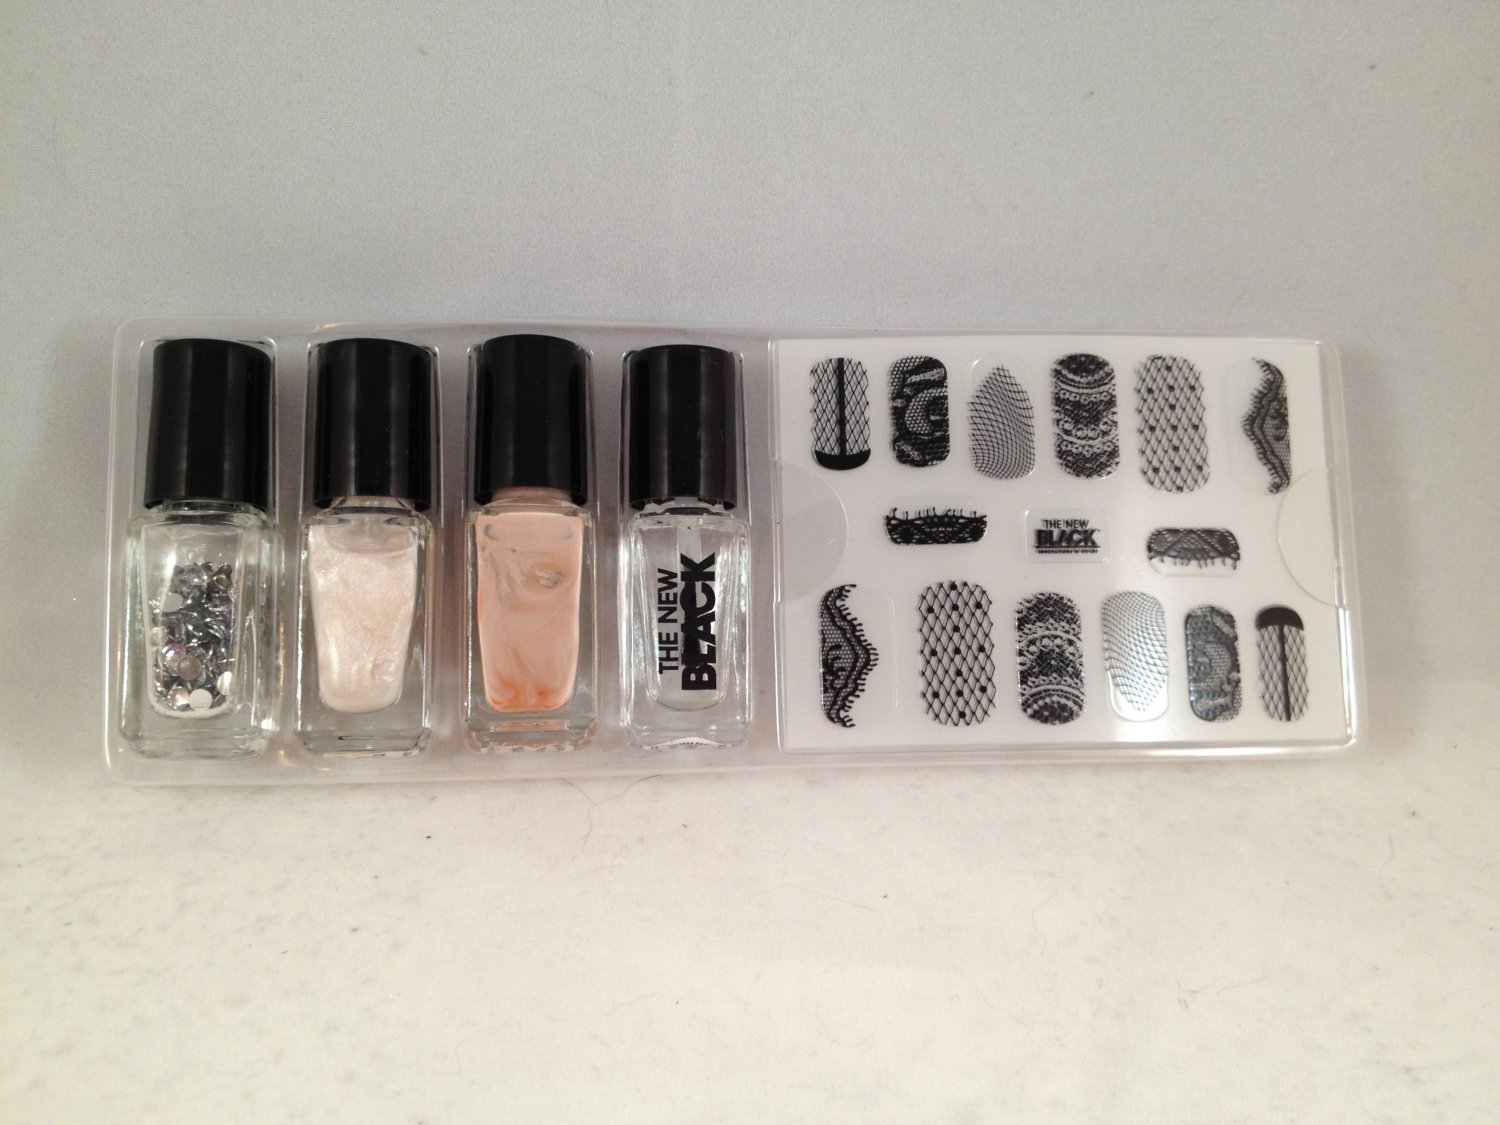 The New Black Mesh and Lace Nail Polish and Strips lacquer color decals